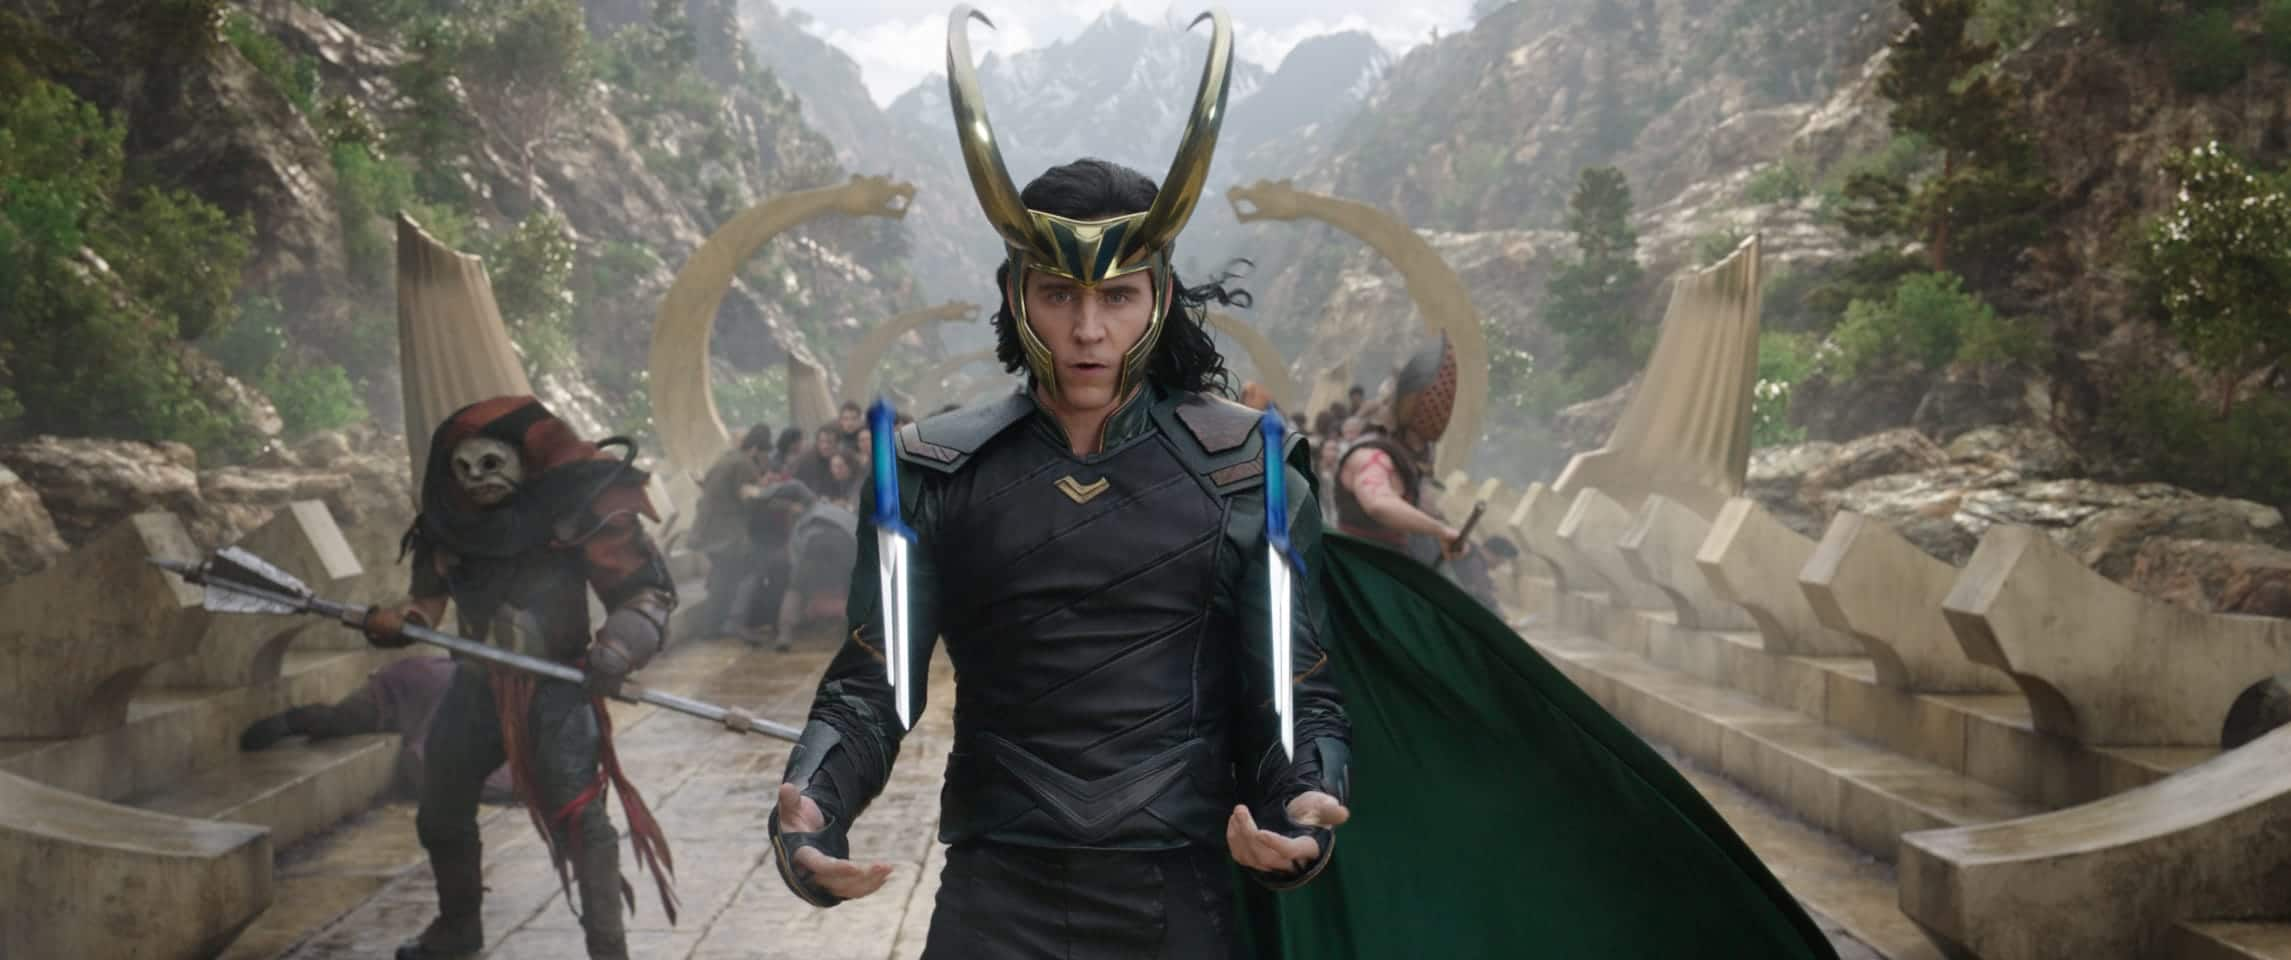 Thor Ragnarok - Tom Hiddleston as Loki